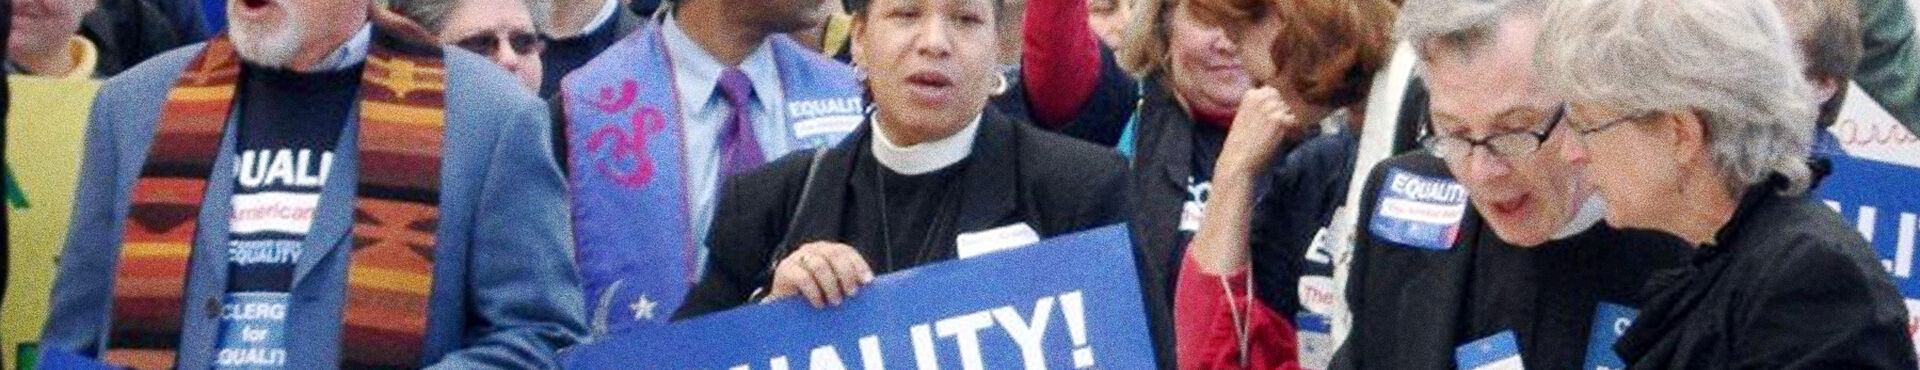 Banner - Garden State Equality Education Fund